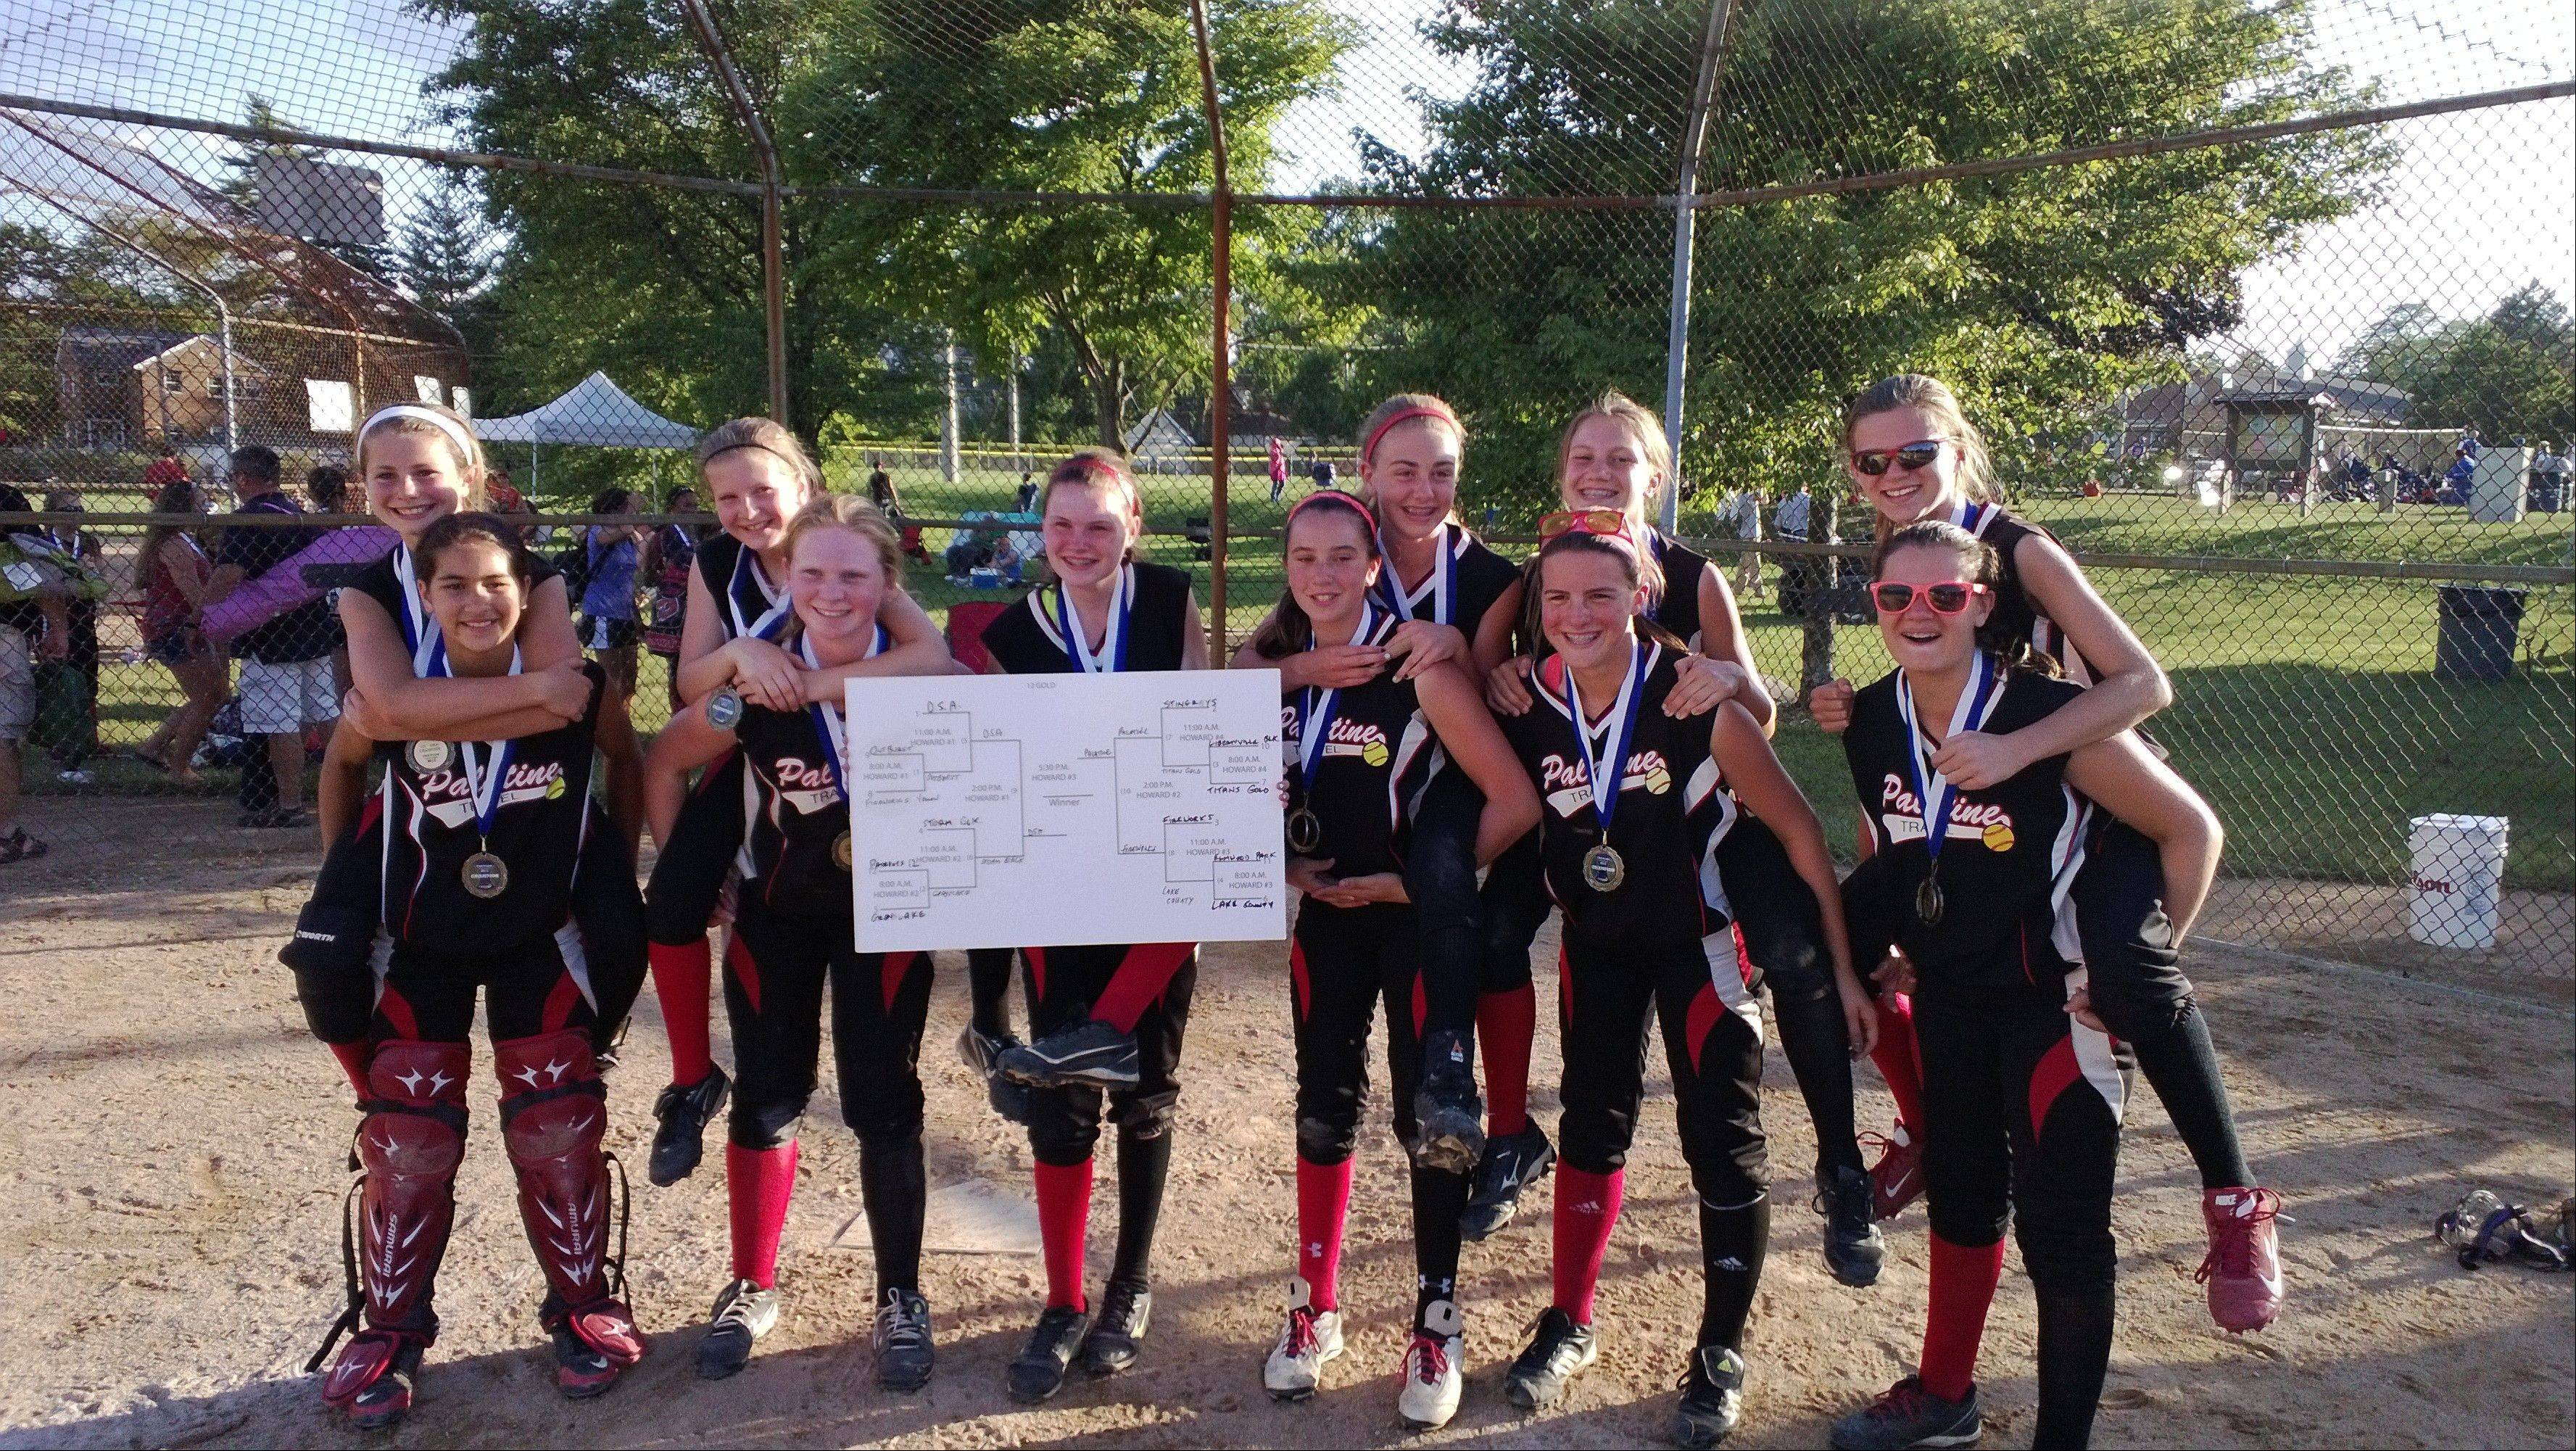 The Palatine Travelers U12 Girls Softball Team celebrate a win at the Wilmette Classic held Father's Day weekend.